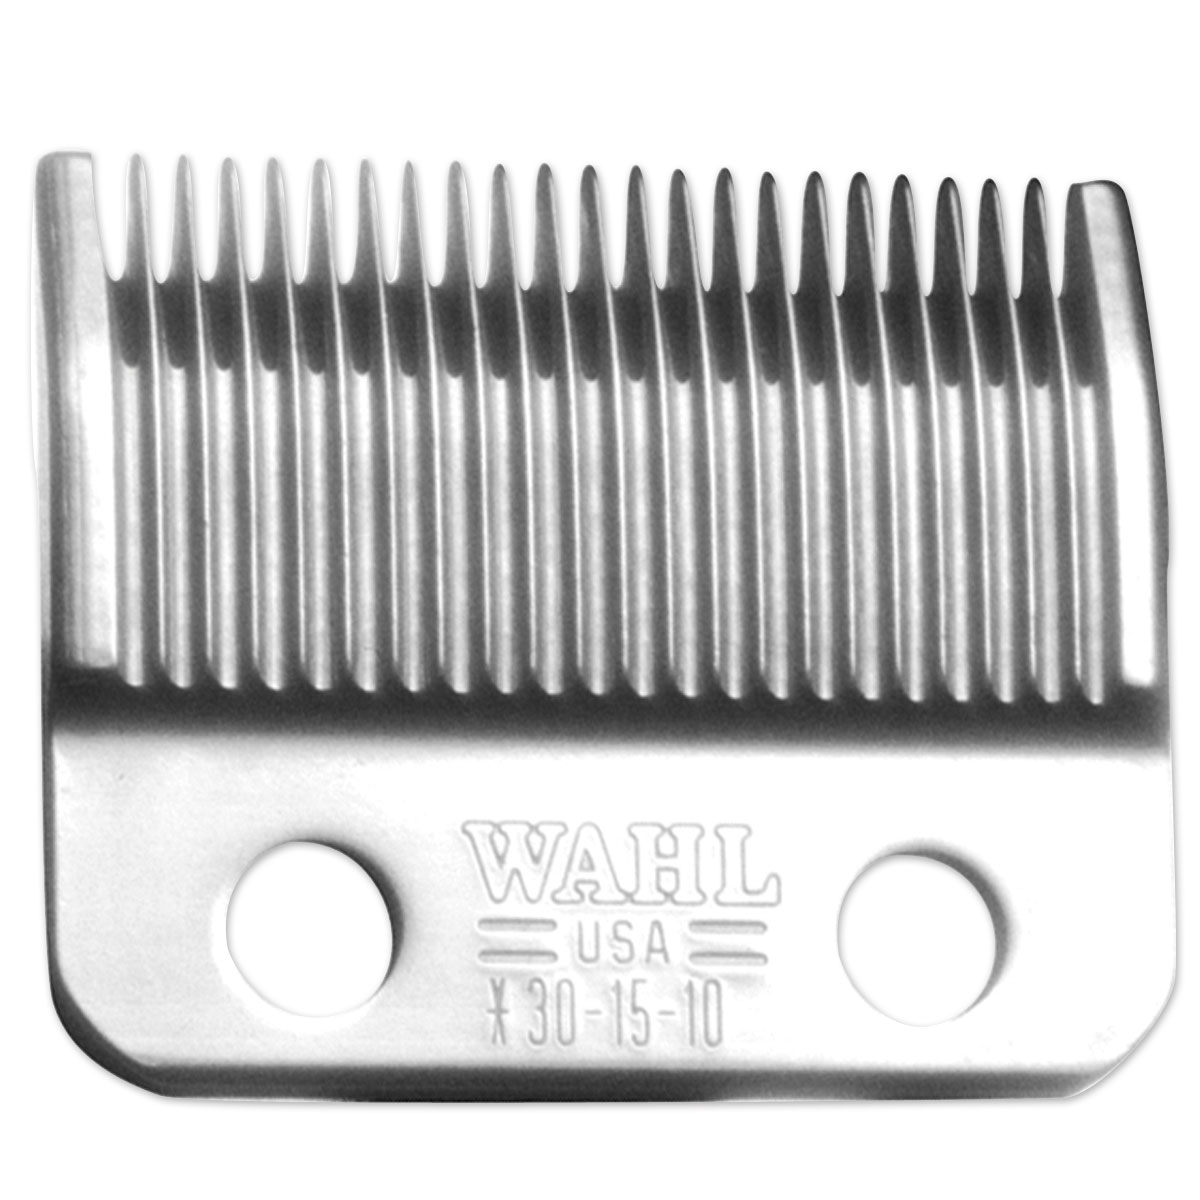 Wahl Multi-Cut Adjustable Replacement Blades 30-15-10